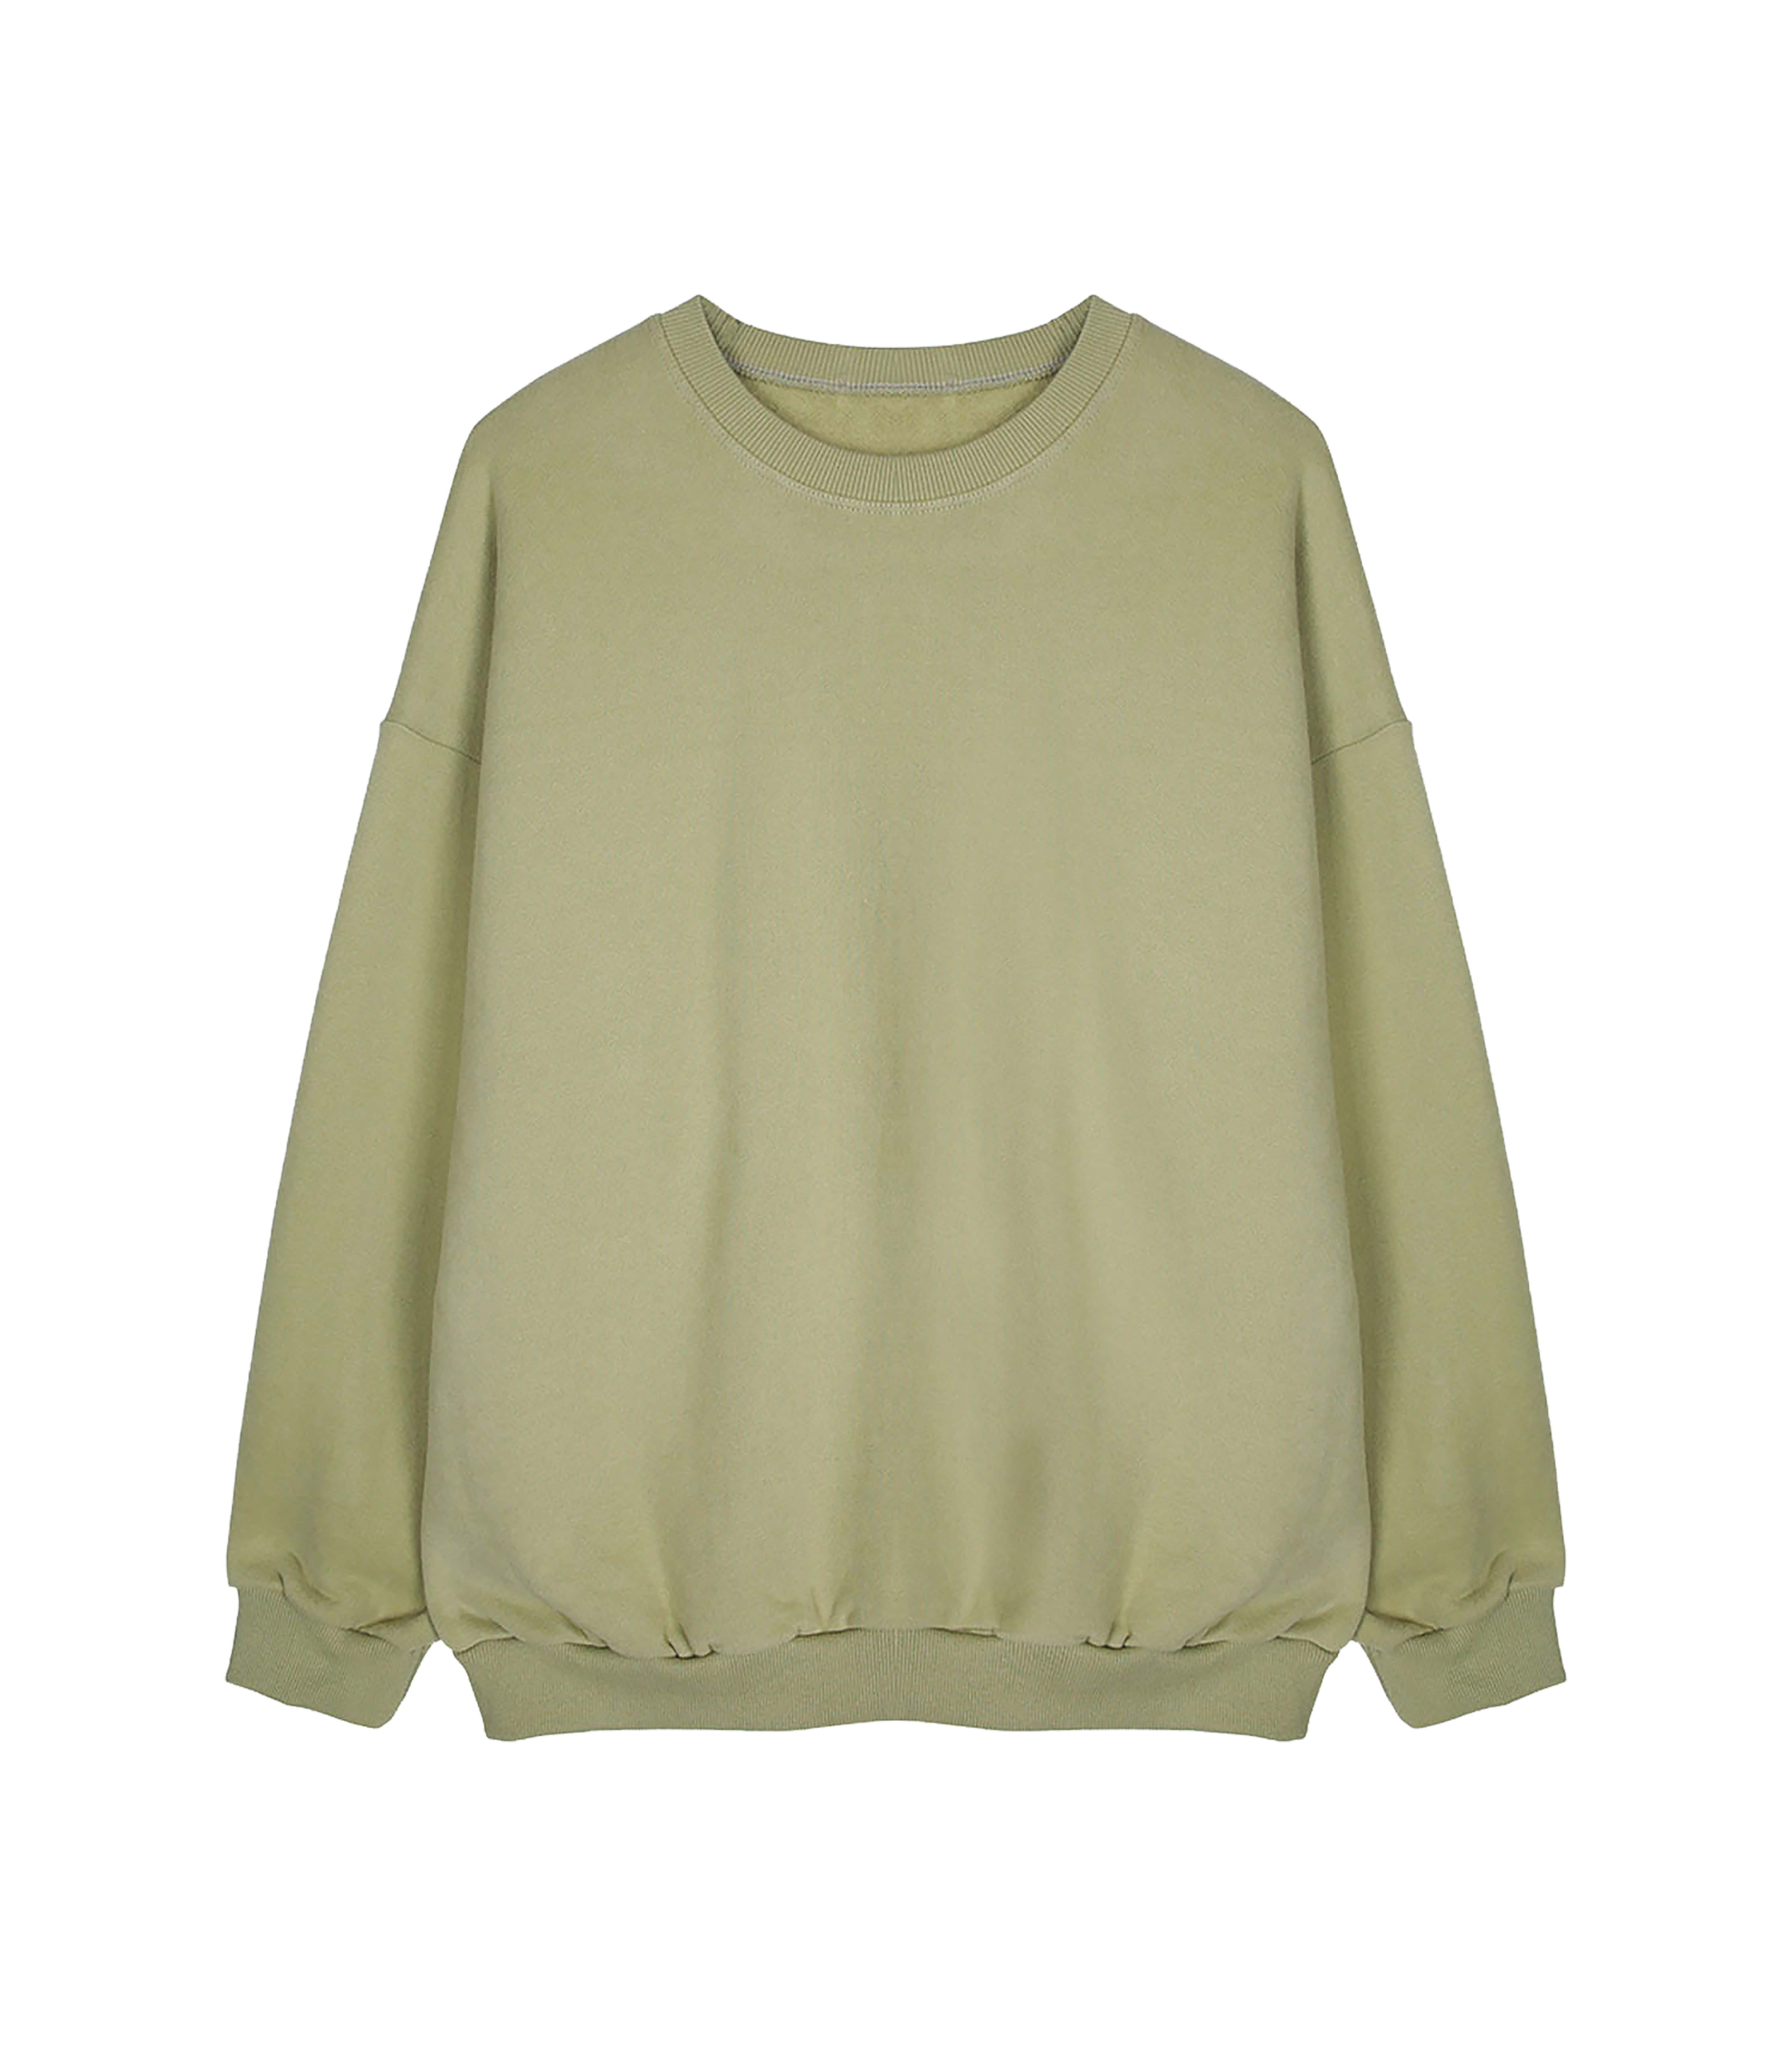 DAILY AND EASY BASIC SWEATSHIRTS (LIGHT KHAKI)